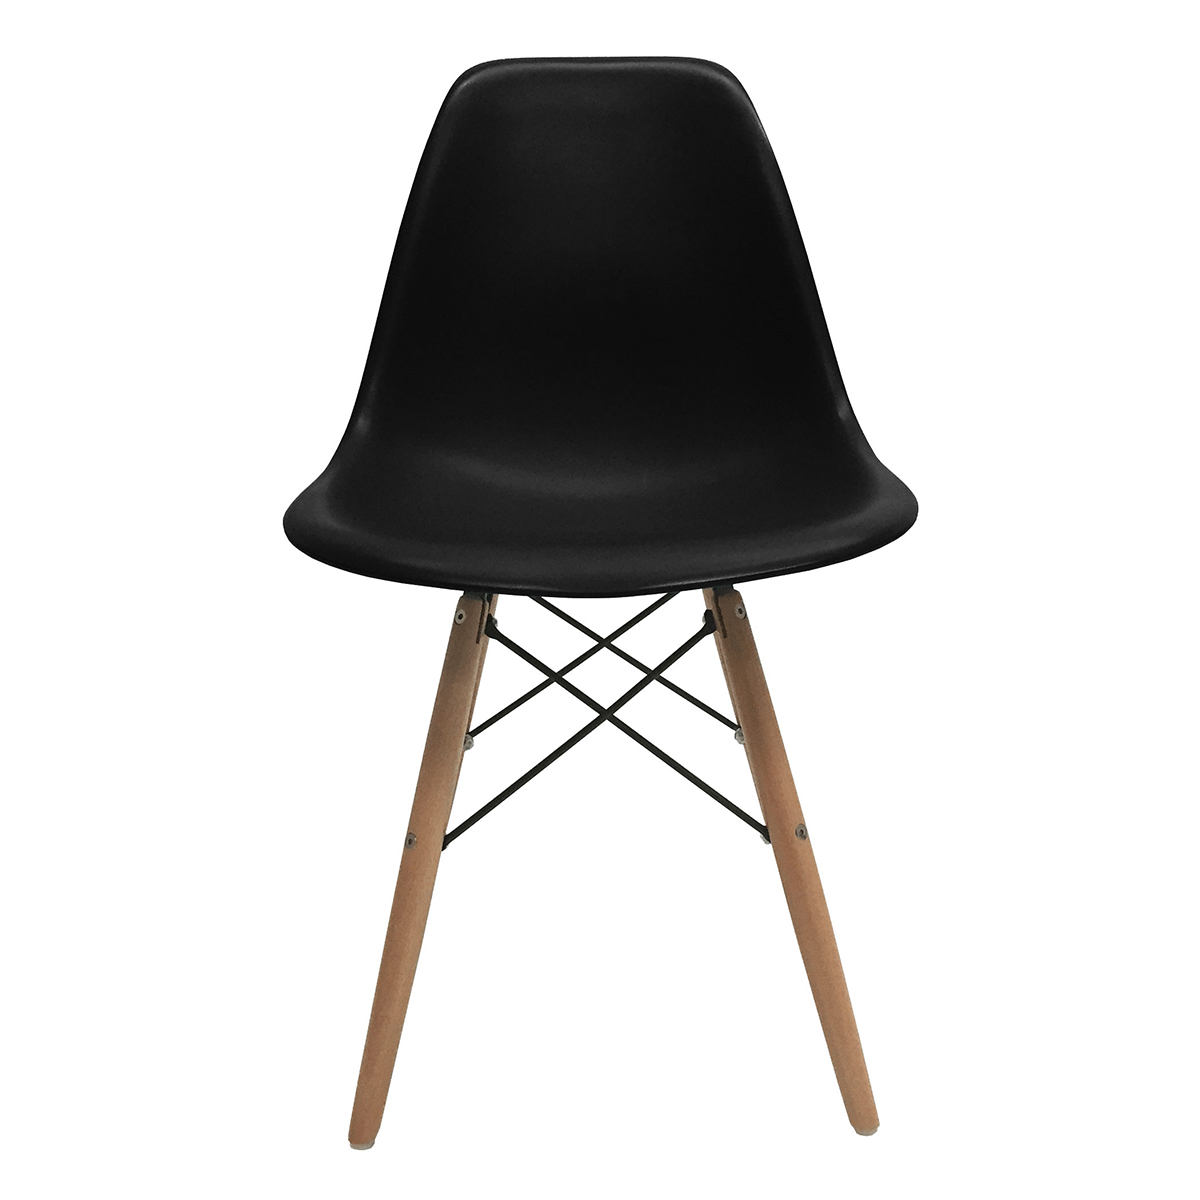 Mid Century Wood Eames Dsw Style Molded Plastic Side  : 41414e from www.ebay.com.au size 1200 x 1200 jpeg 249kB